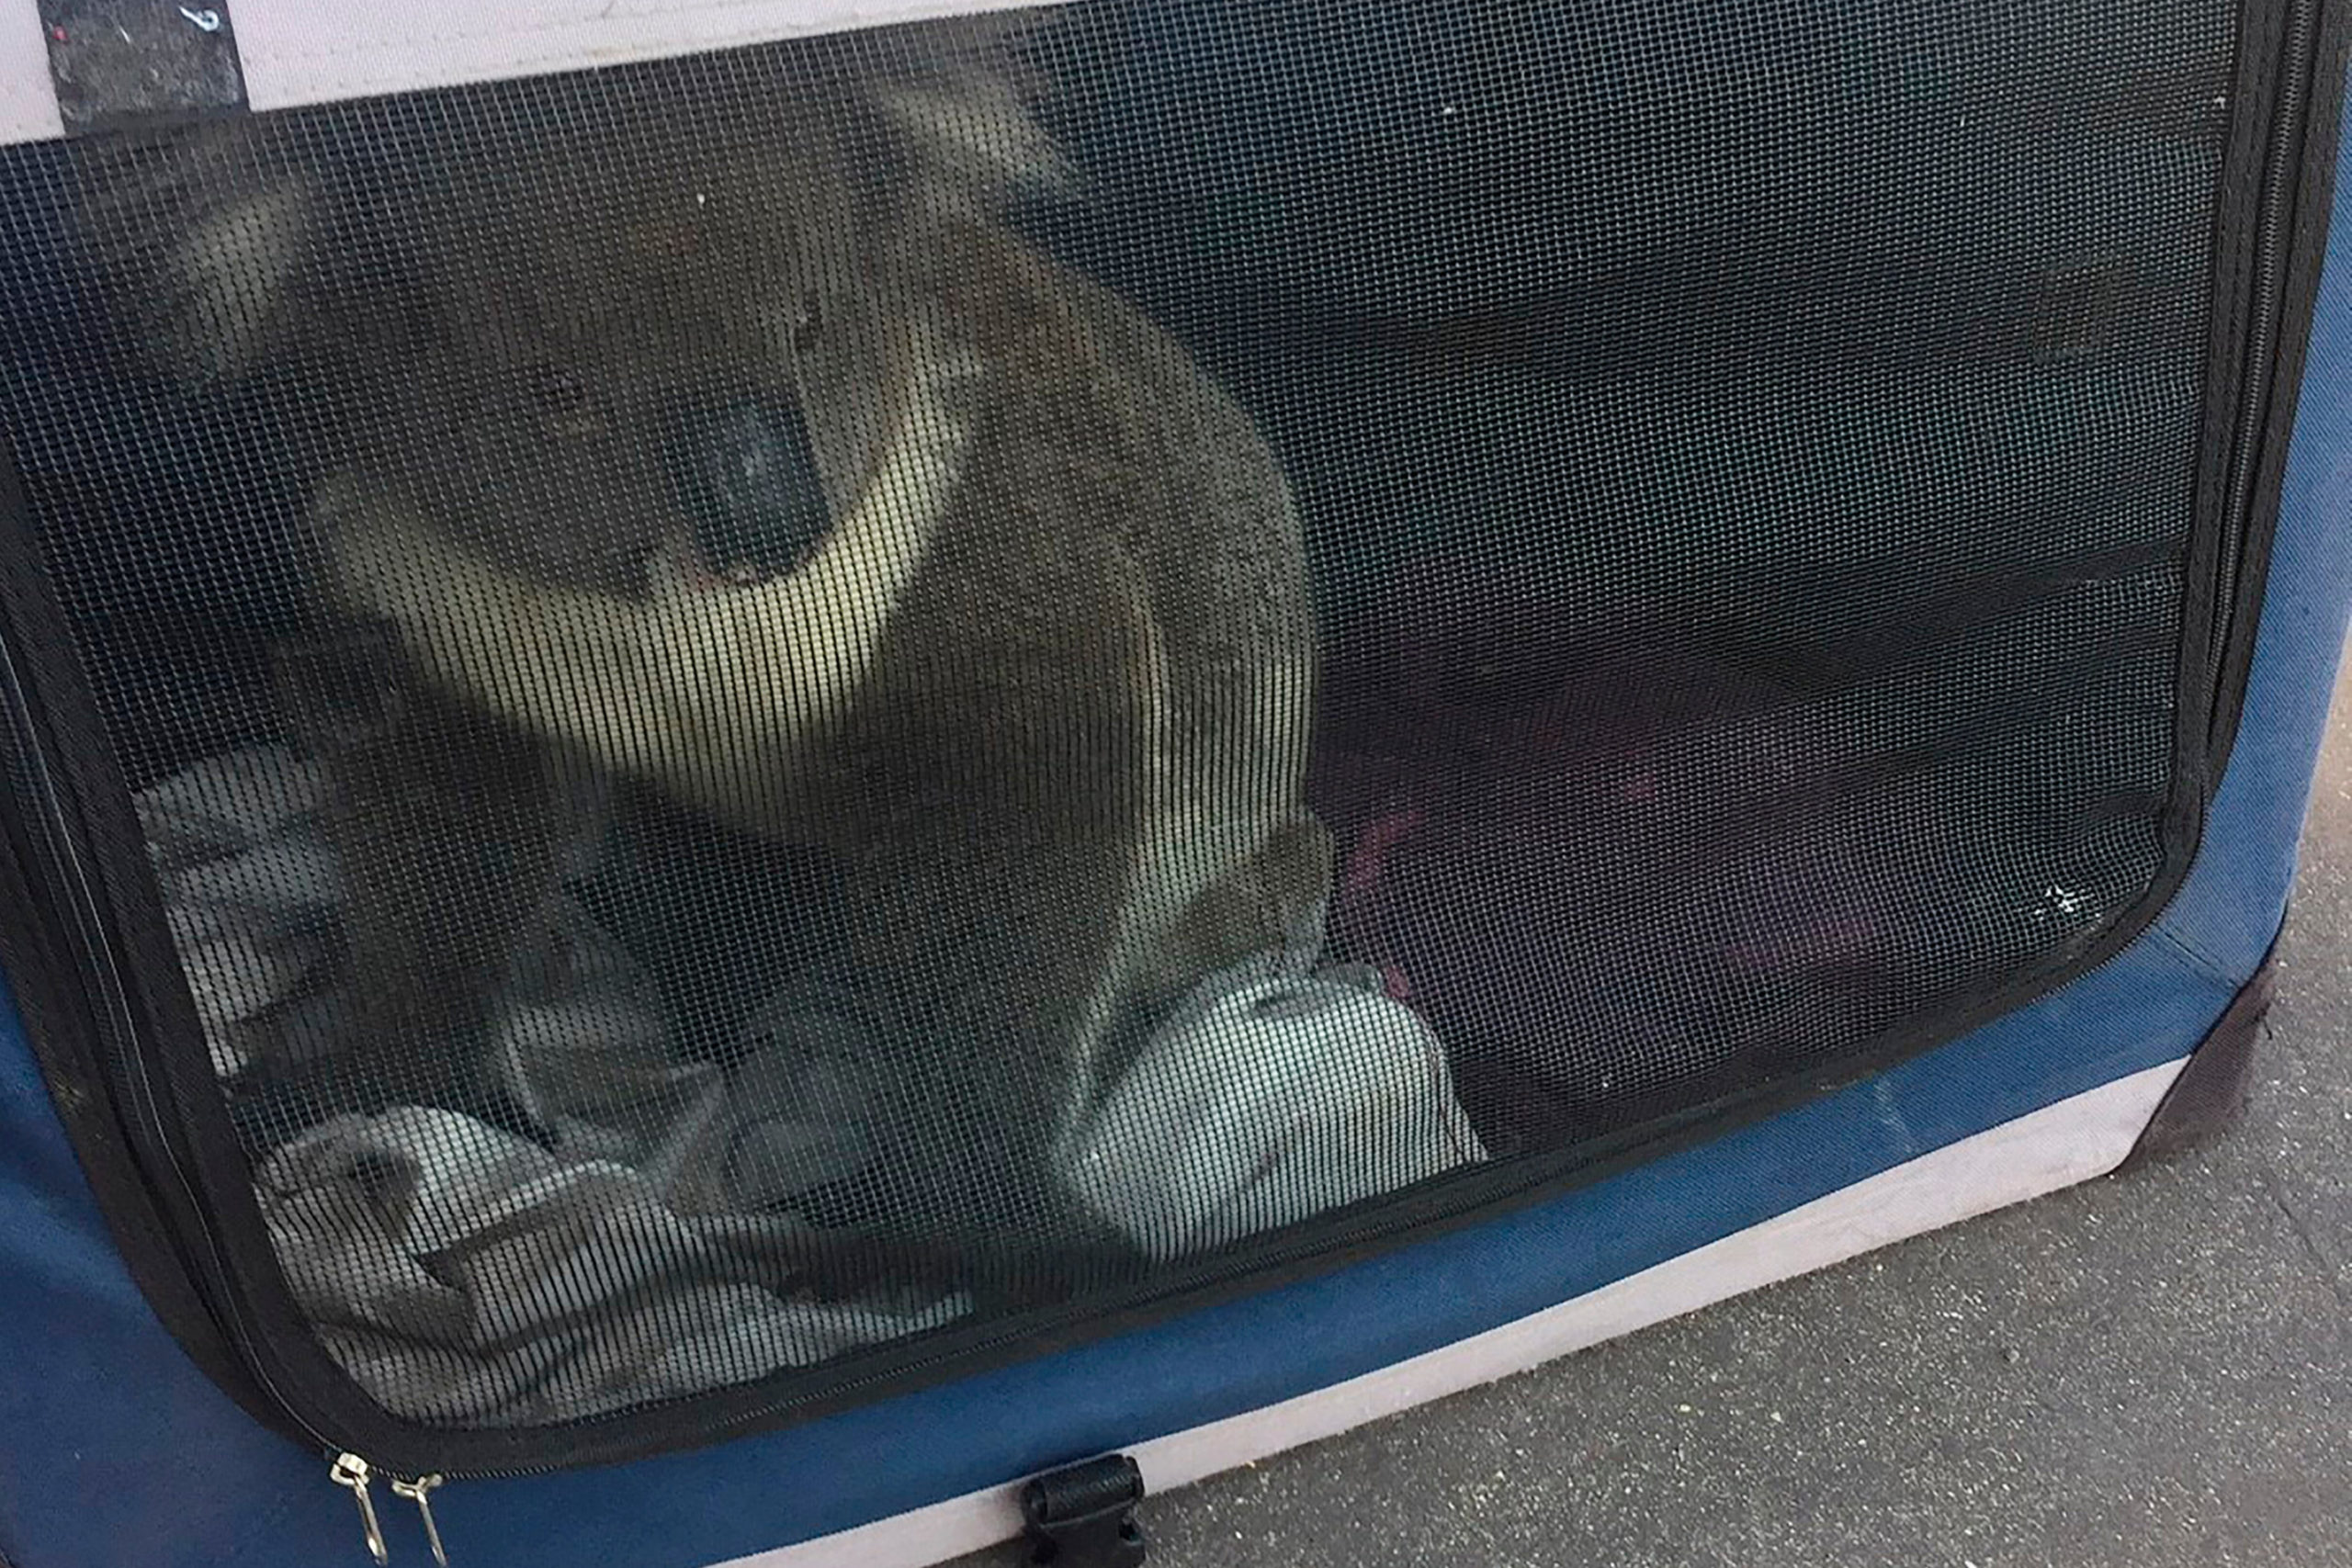 <p>The Koala was placed in a soft cage</p>